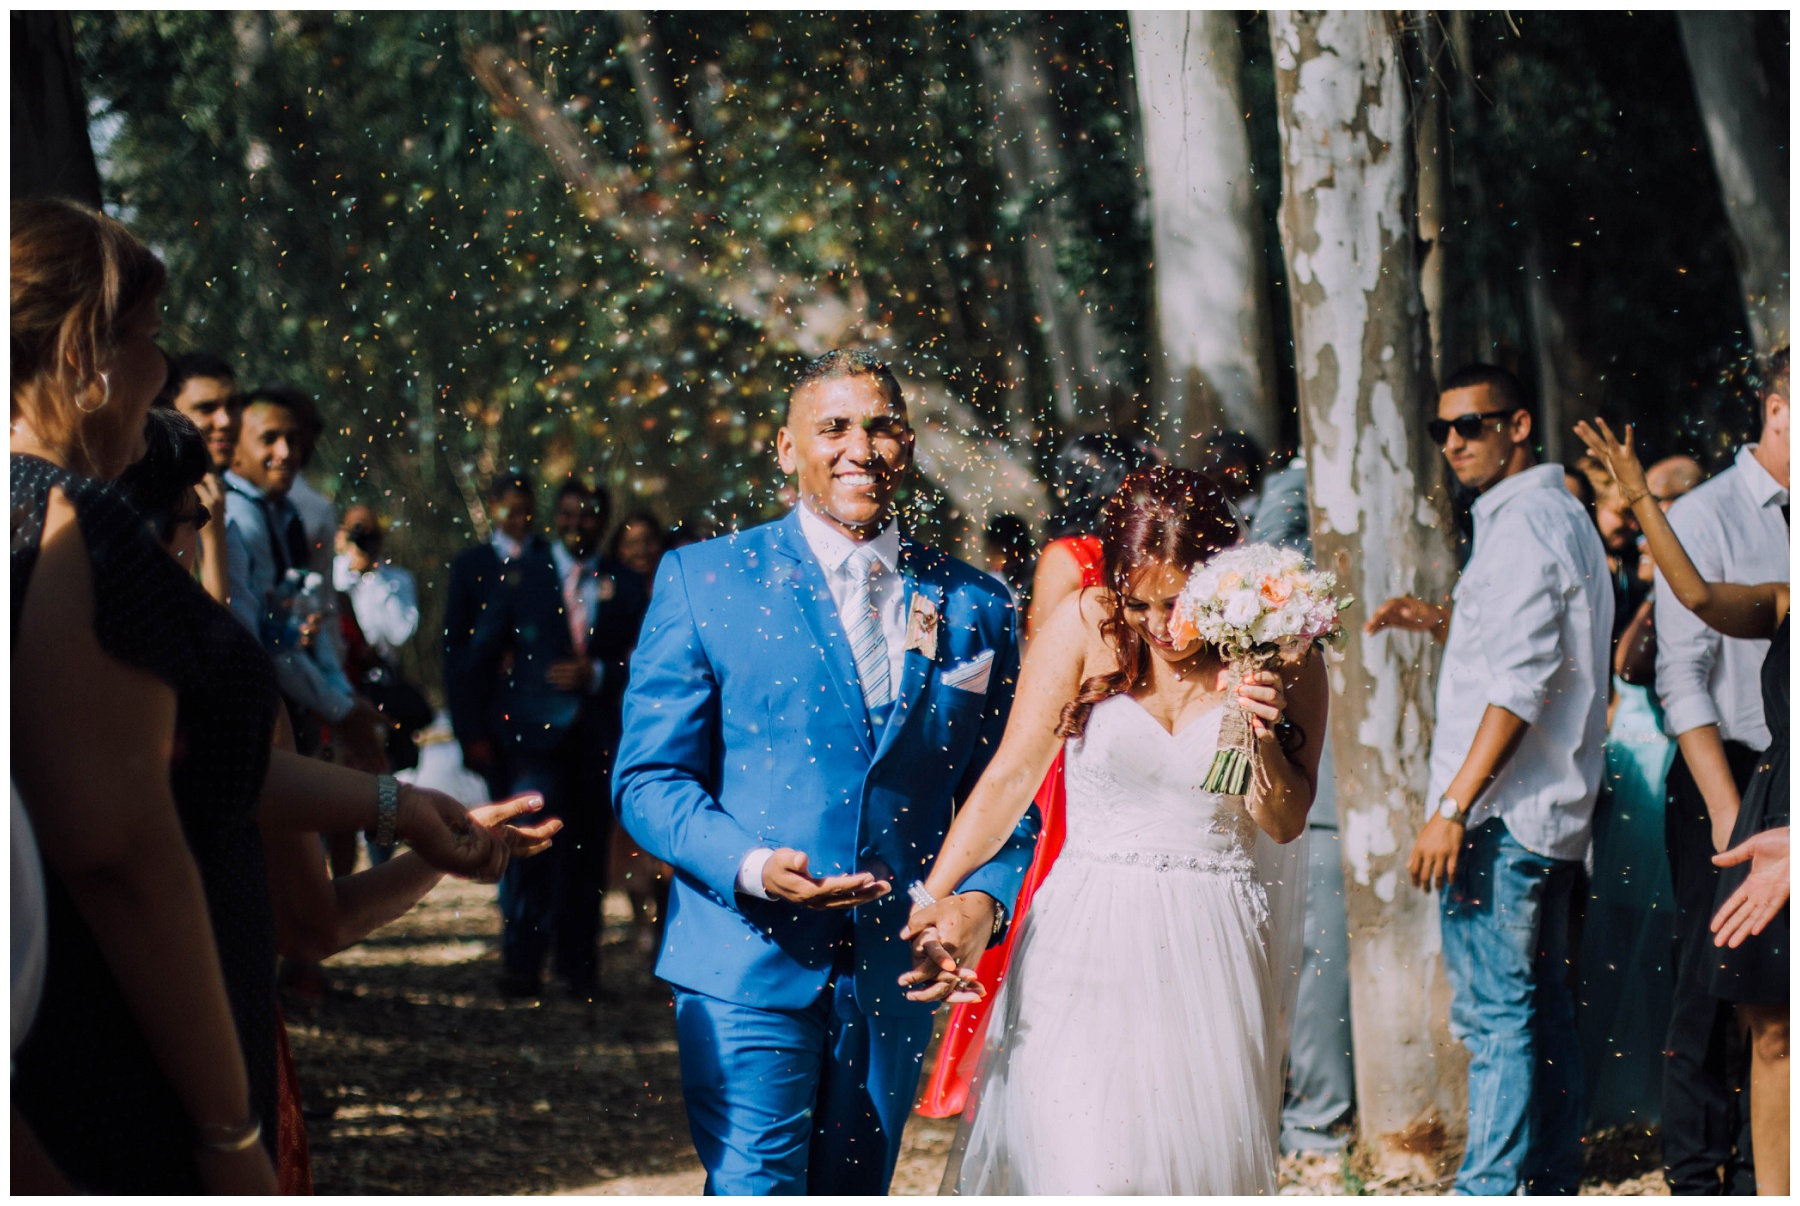 Ronel Kruger Cape Town Wedding and Lifestyle Photographer_1314.jpg